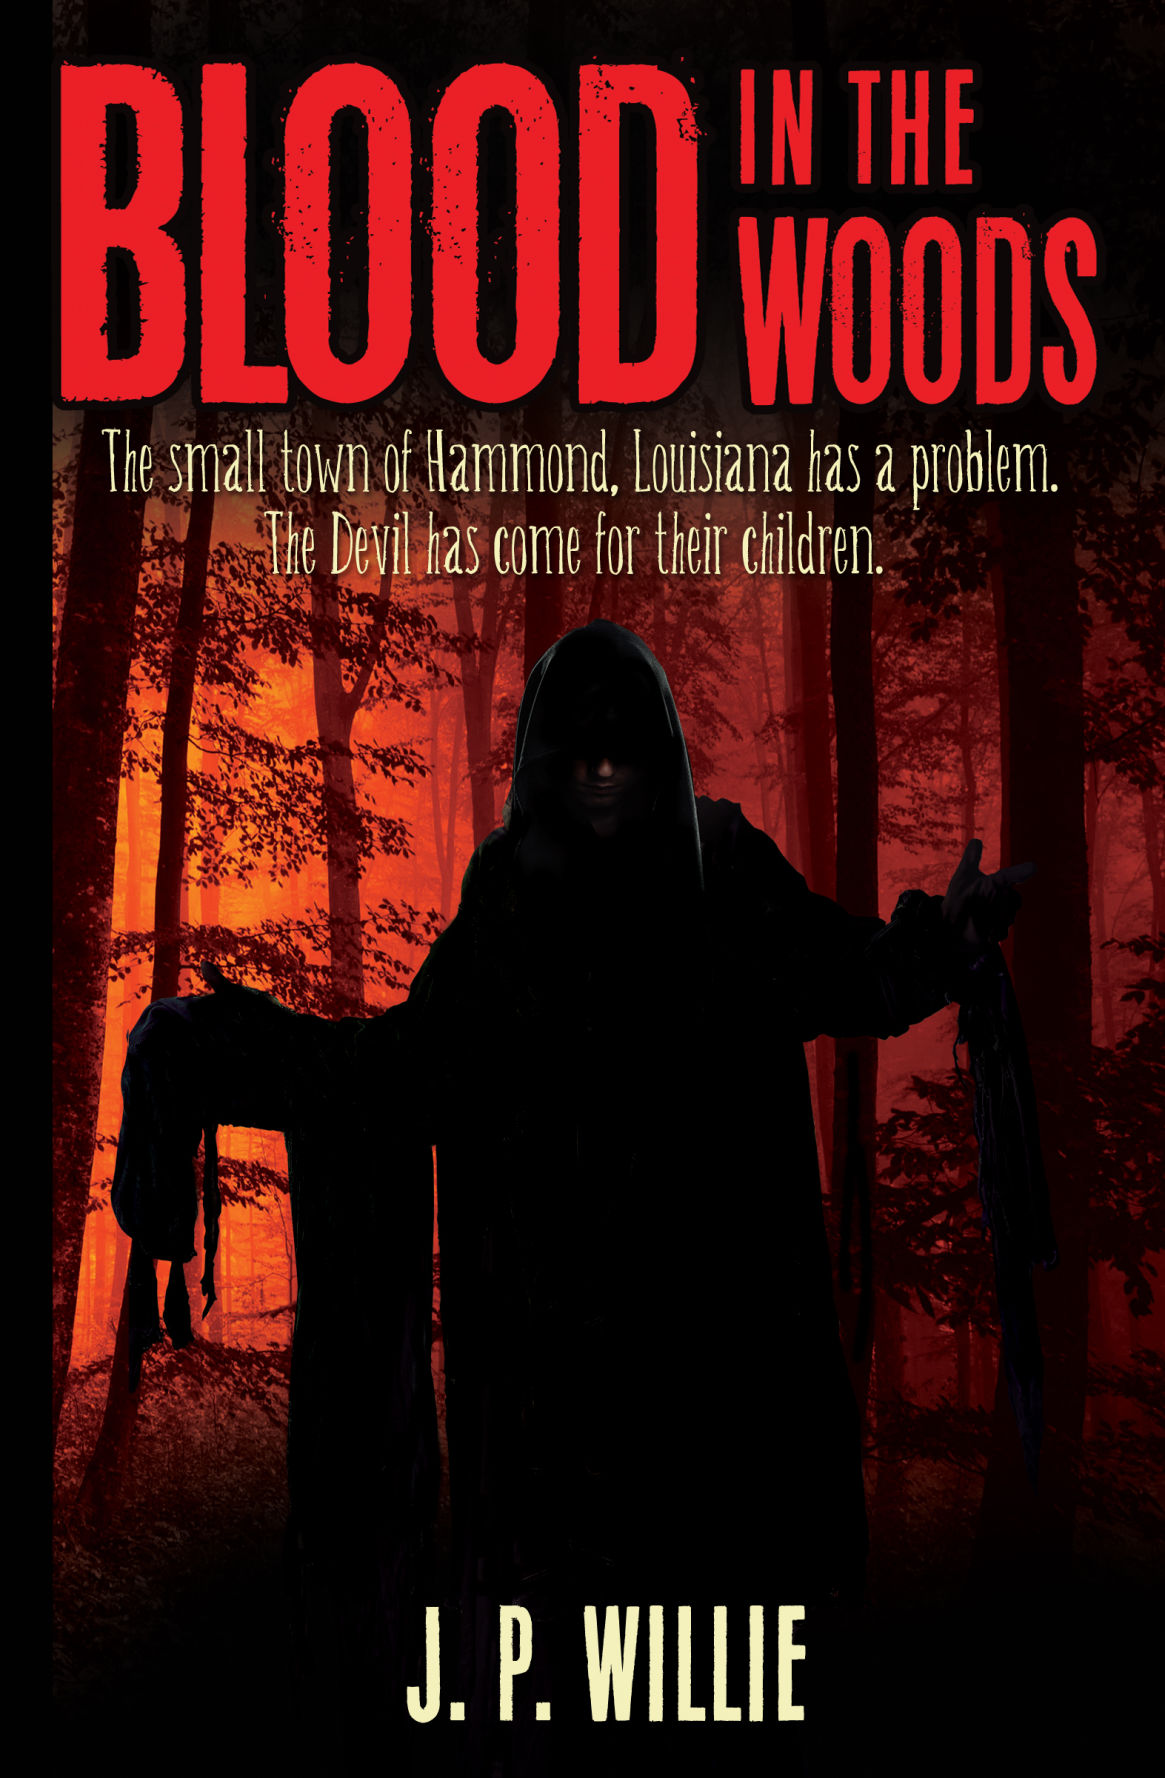 Blood in the Woods